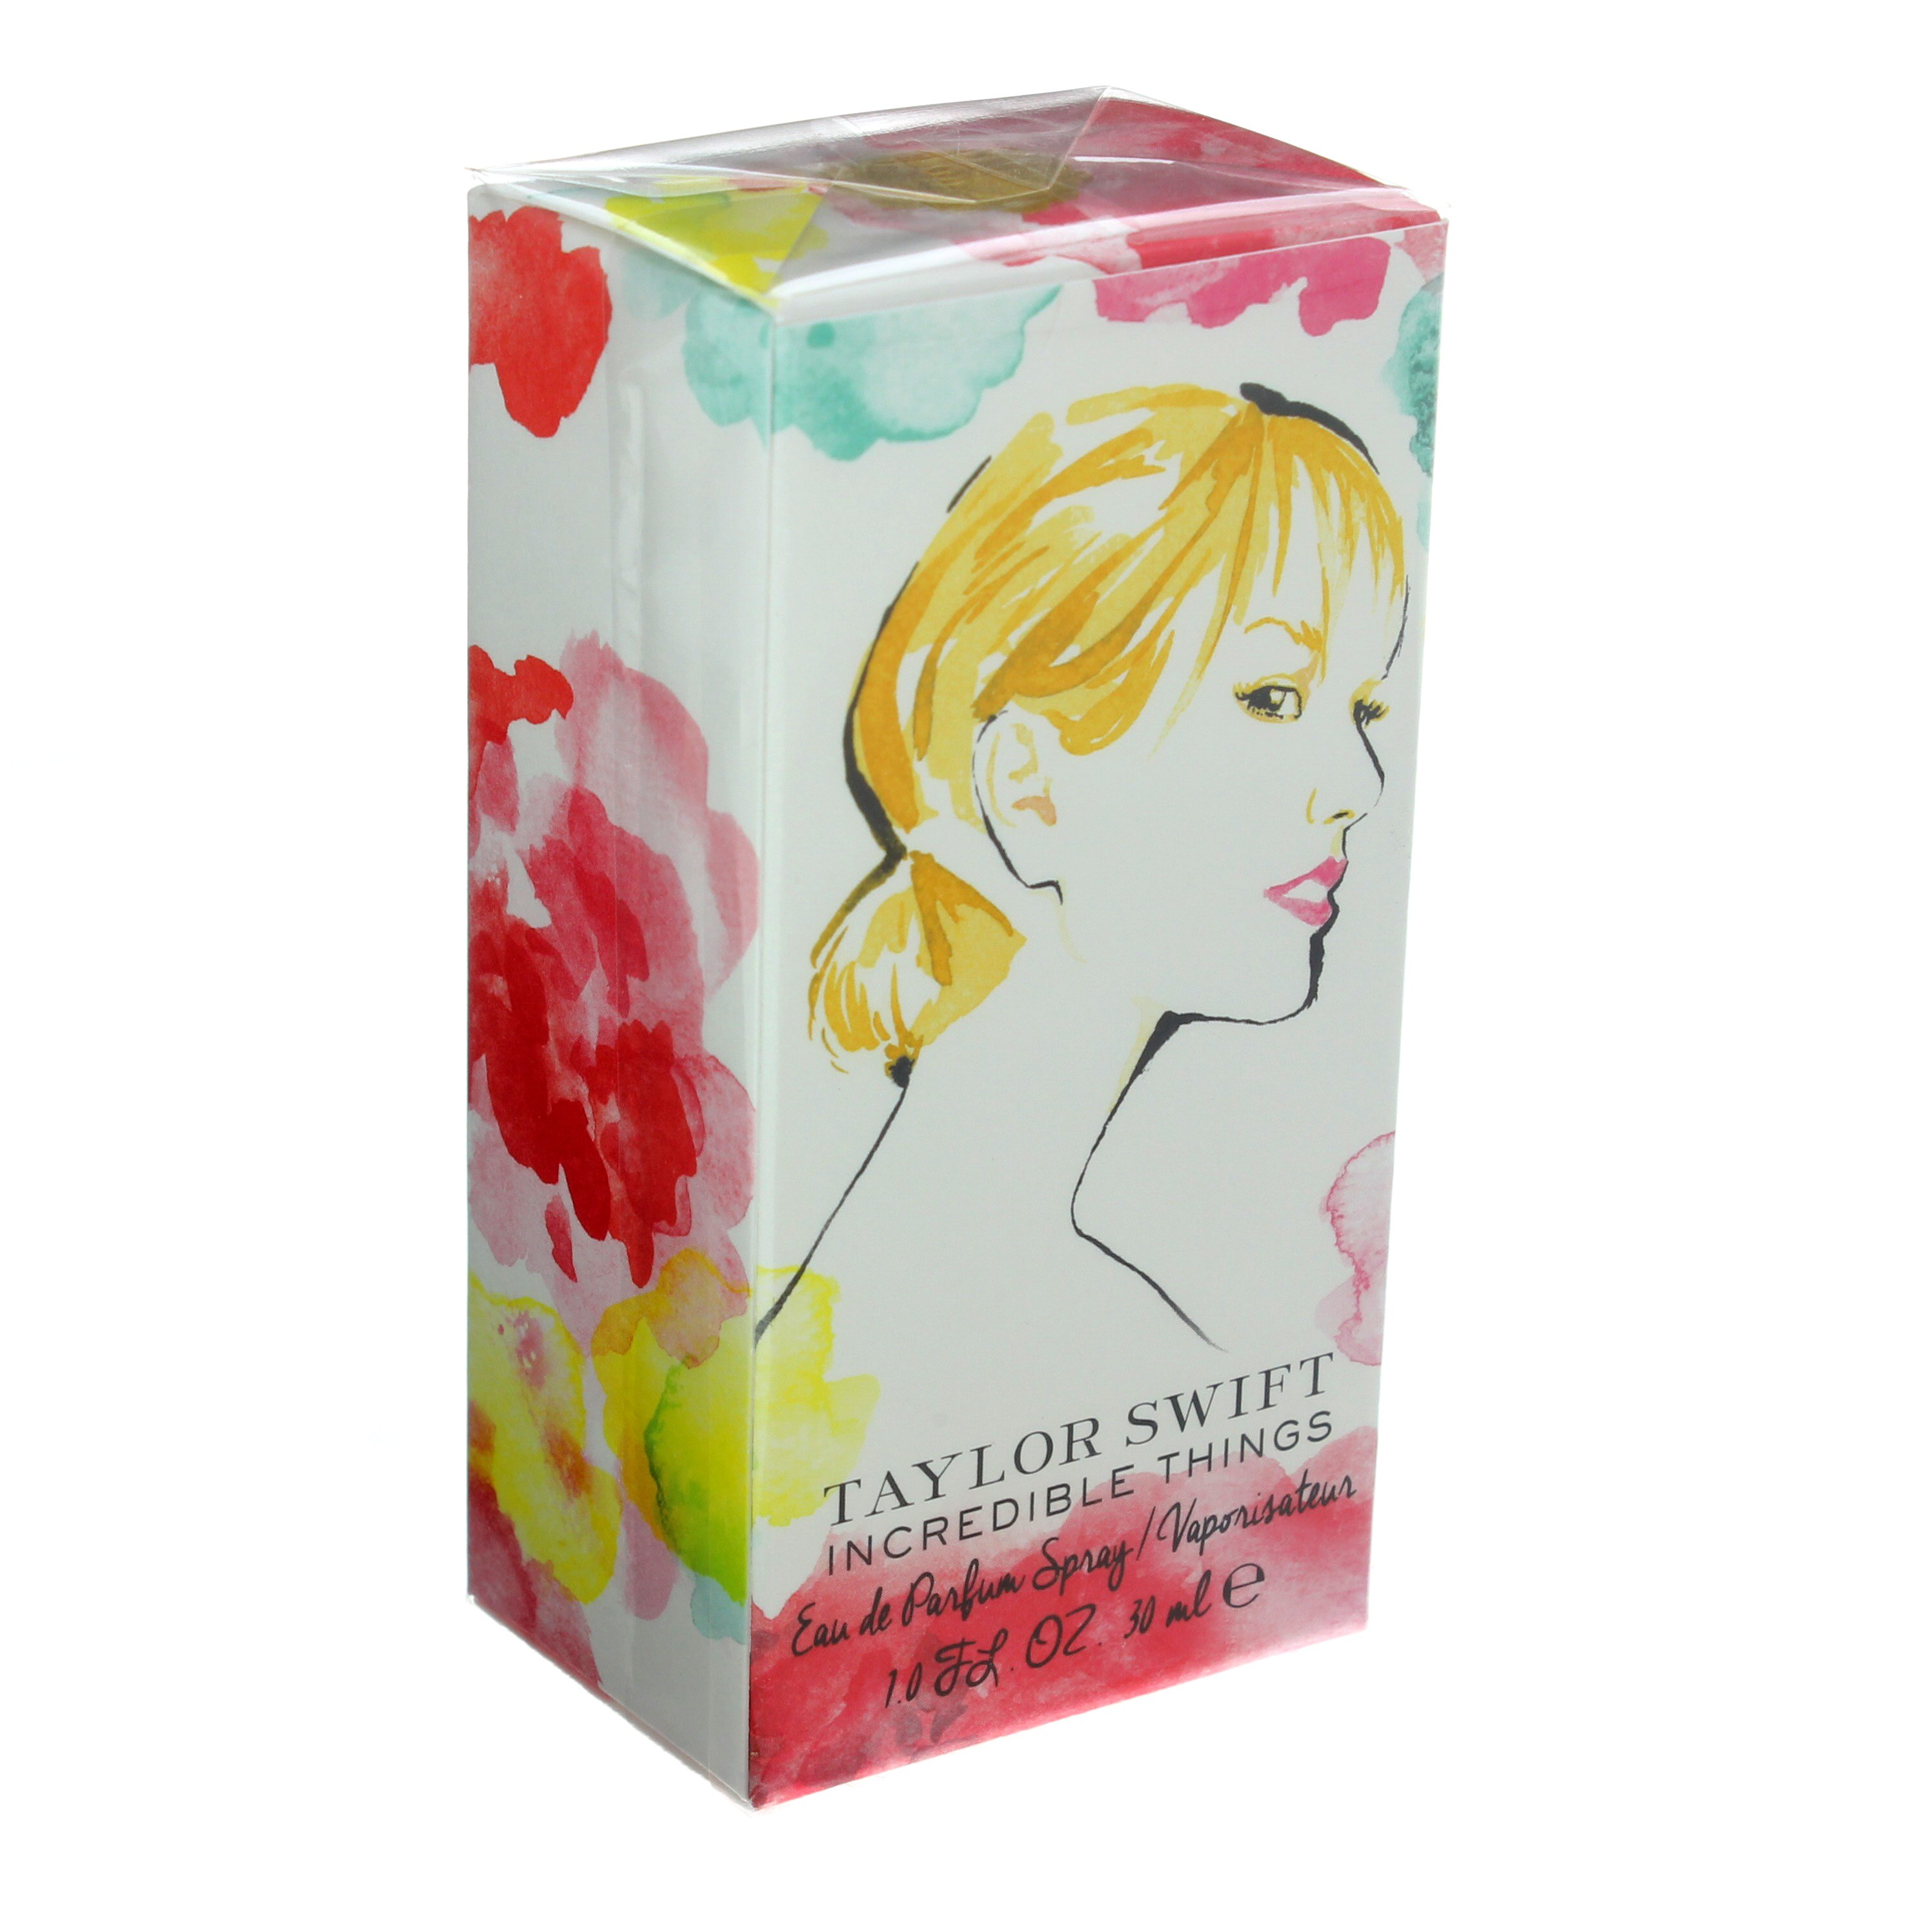 Taylor Swift Incredible Things Women S Fragrance Shop Fragrance At H E B